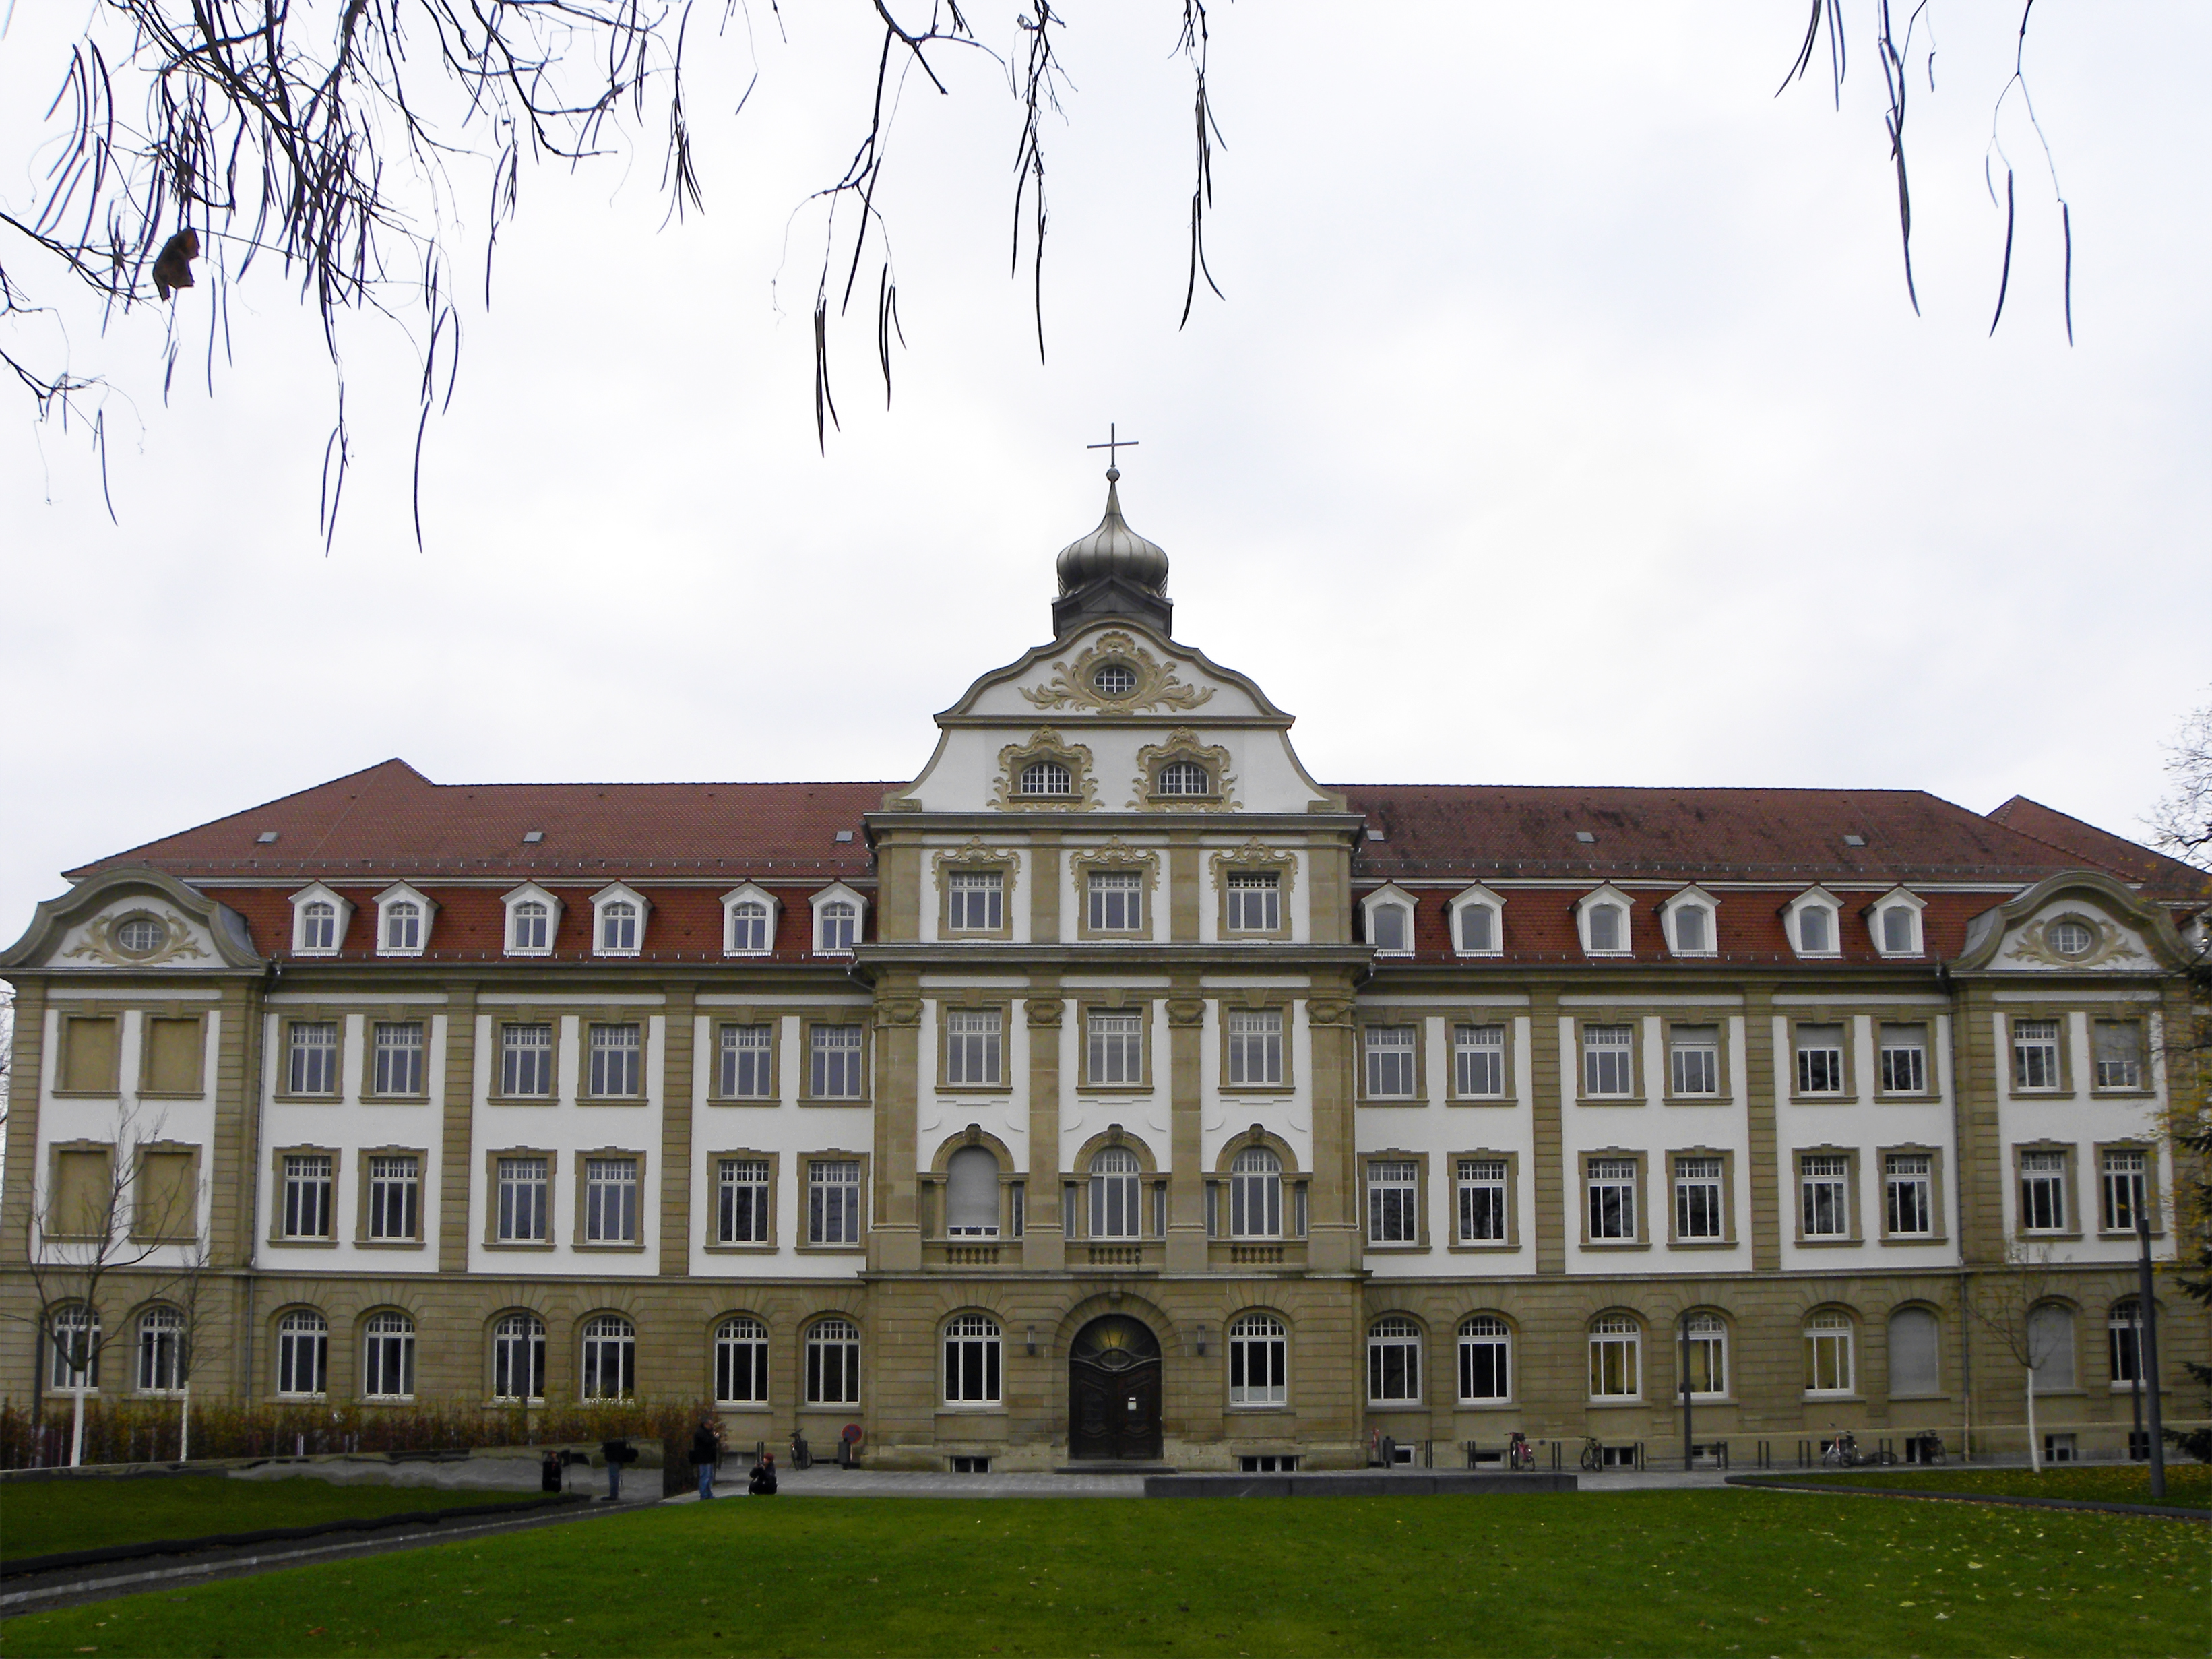 karlsruhe_-_institute_of_technology_-_victoriapensionat_i